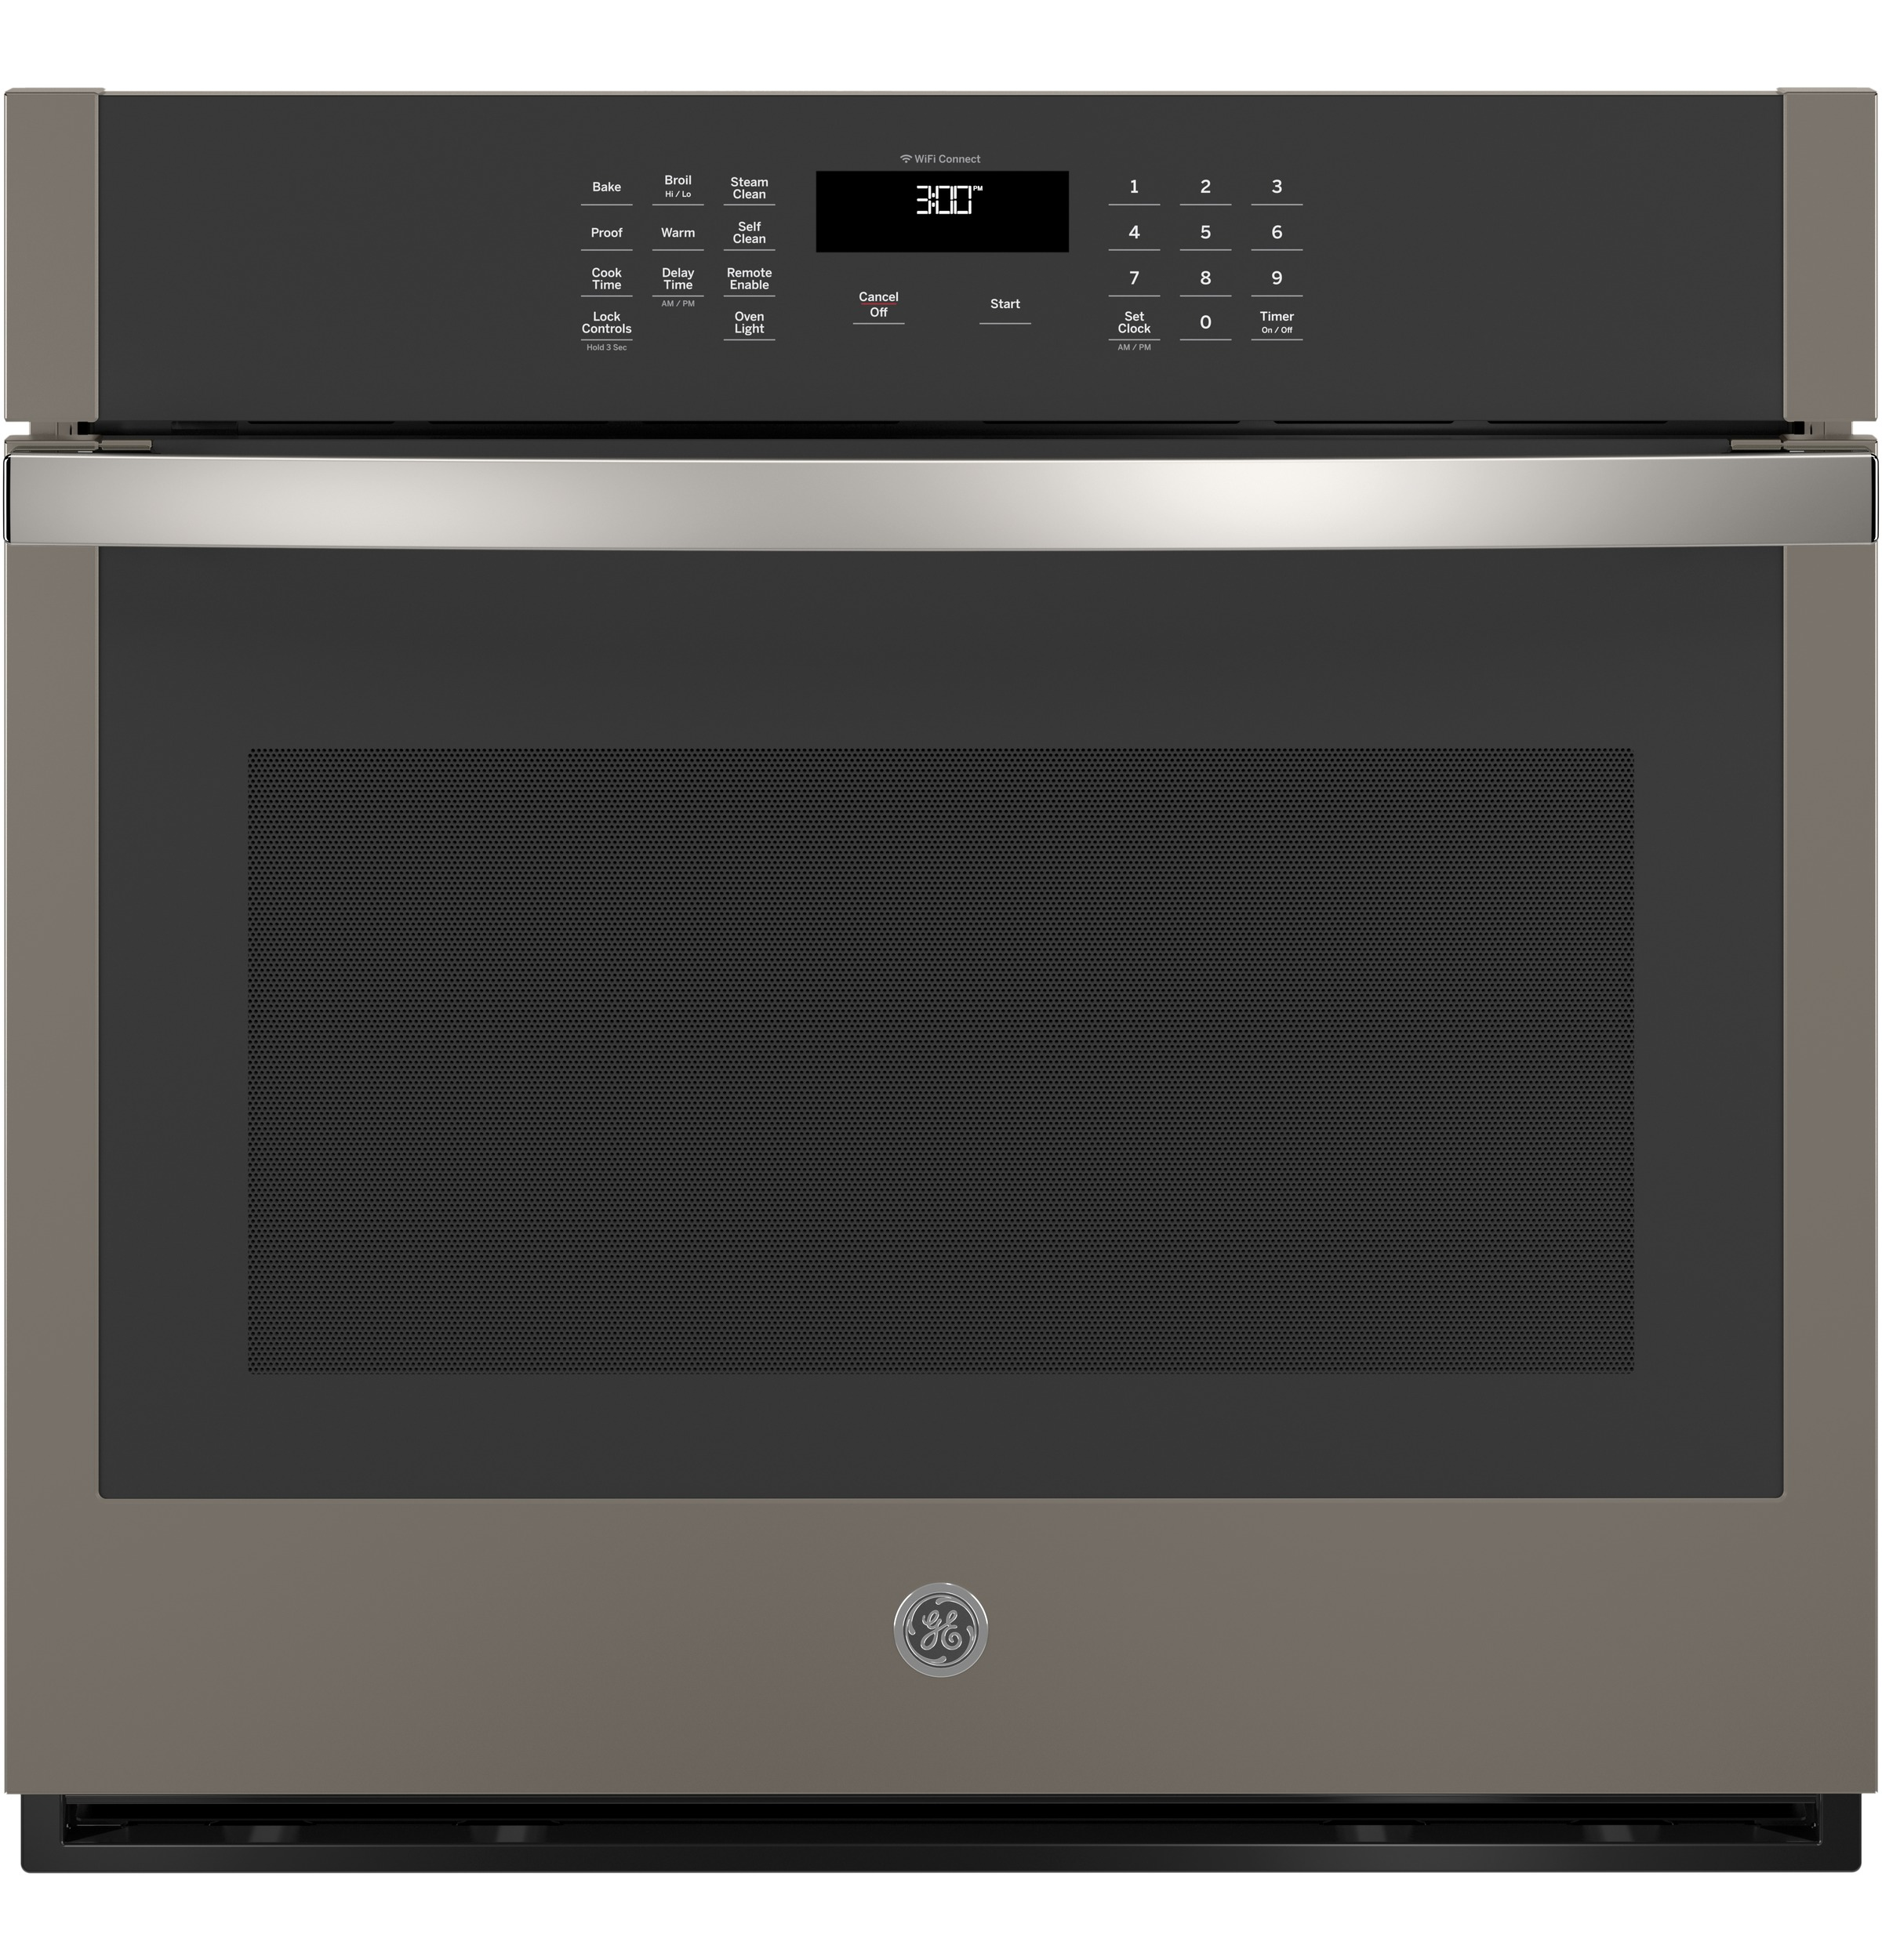 "GE GE® 30"" Smart Built-In Self-Clean Single Wall Oven with Never-Scrub Racks"